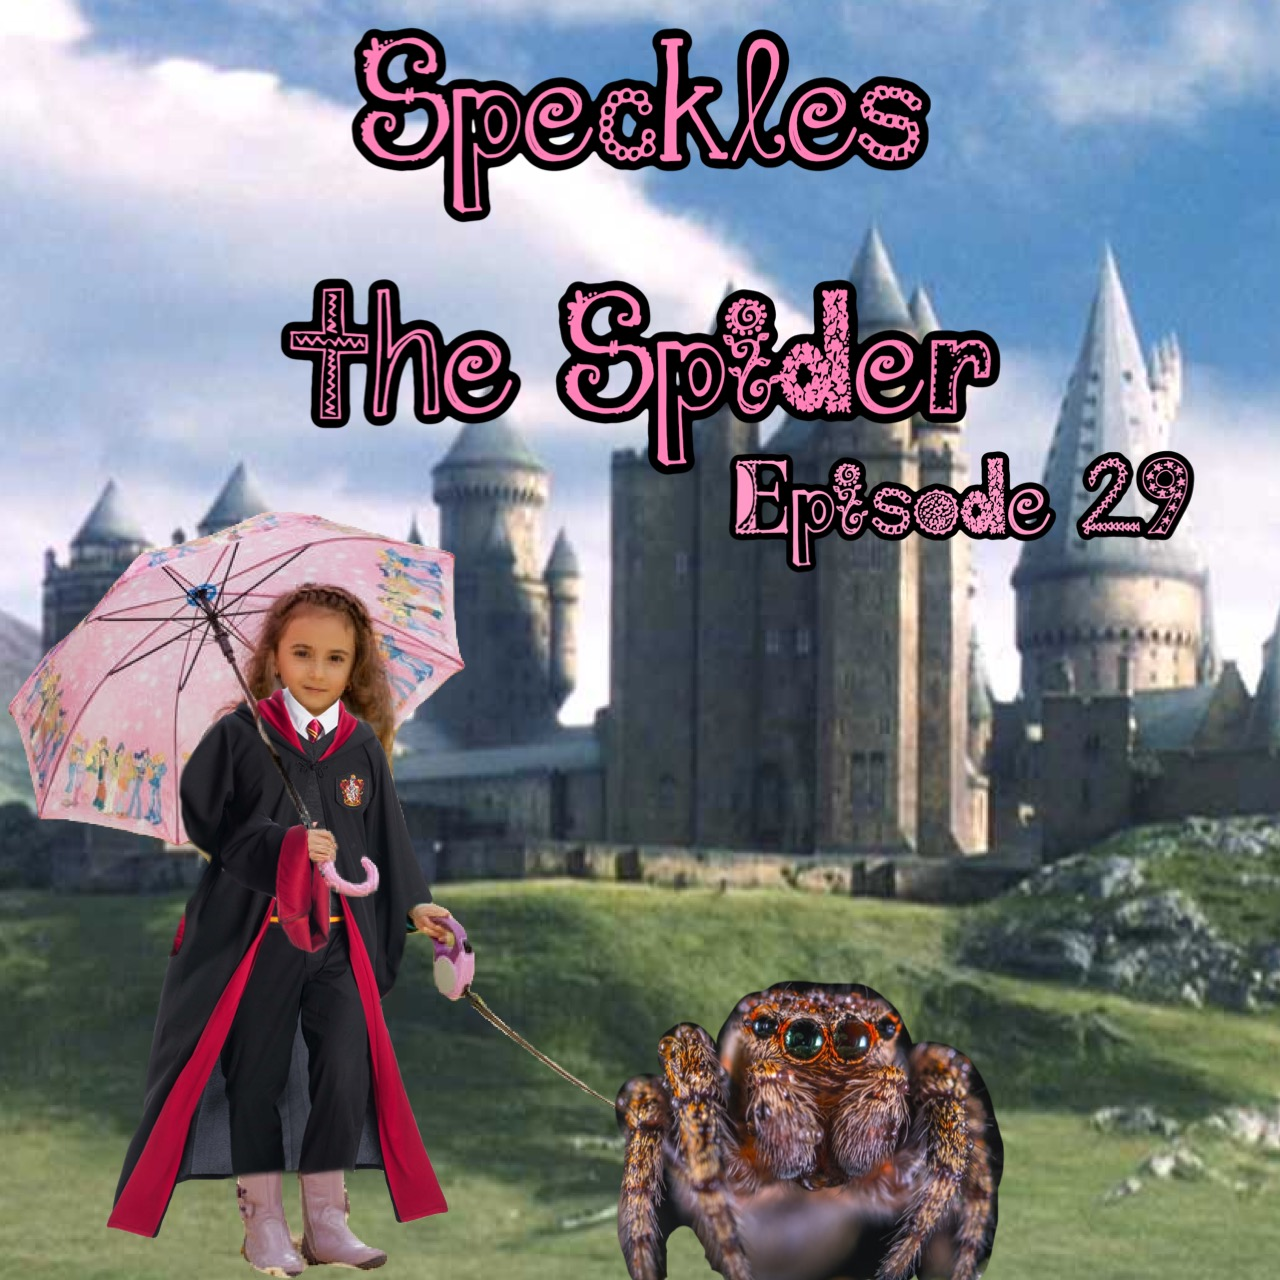 "Hagrid as a young girl stands in front of Hogwarts. She is wearing her Gryffindor robes and pink galoshes, and holds her pink umbrella over her shoulder. In her left hand she holds a pink leash which is connected to an enormous fuzzy spider with large baby seal eyes and a happy face. The image reads, ""Speckles the spider, episode 29."""